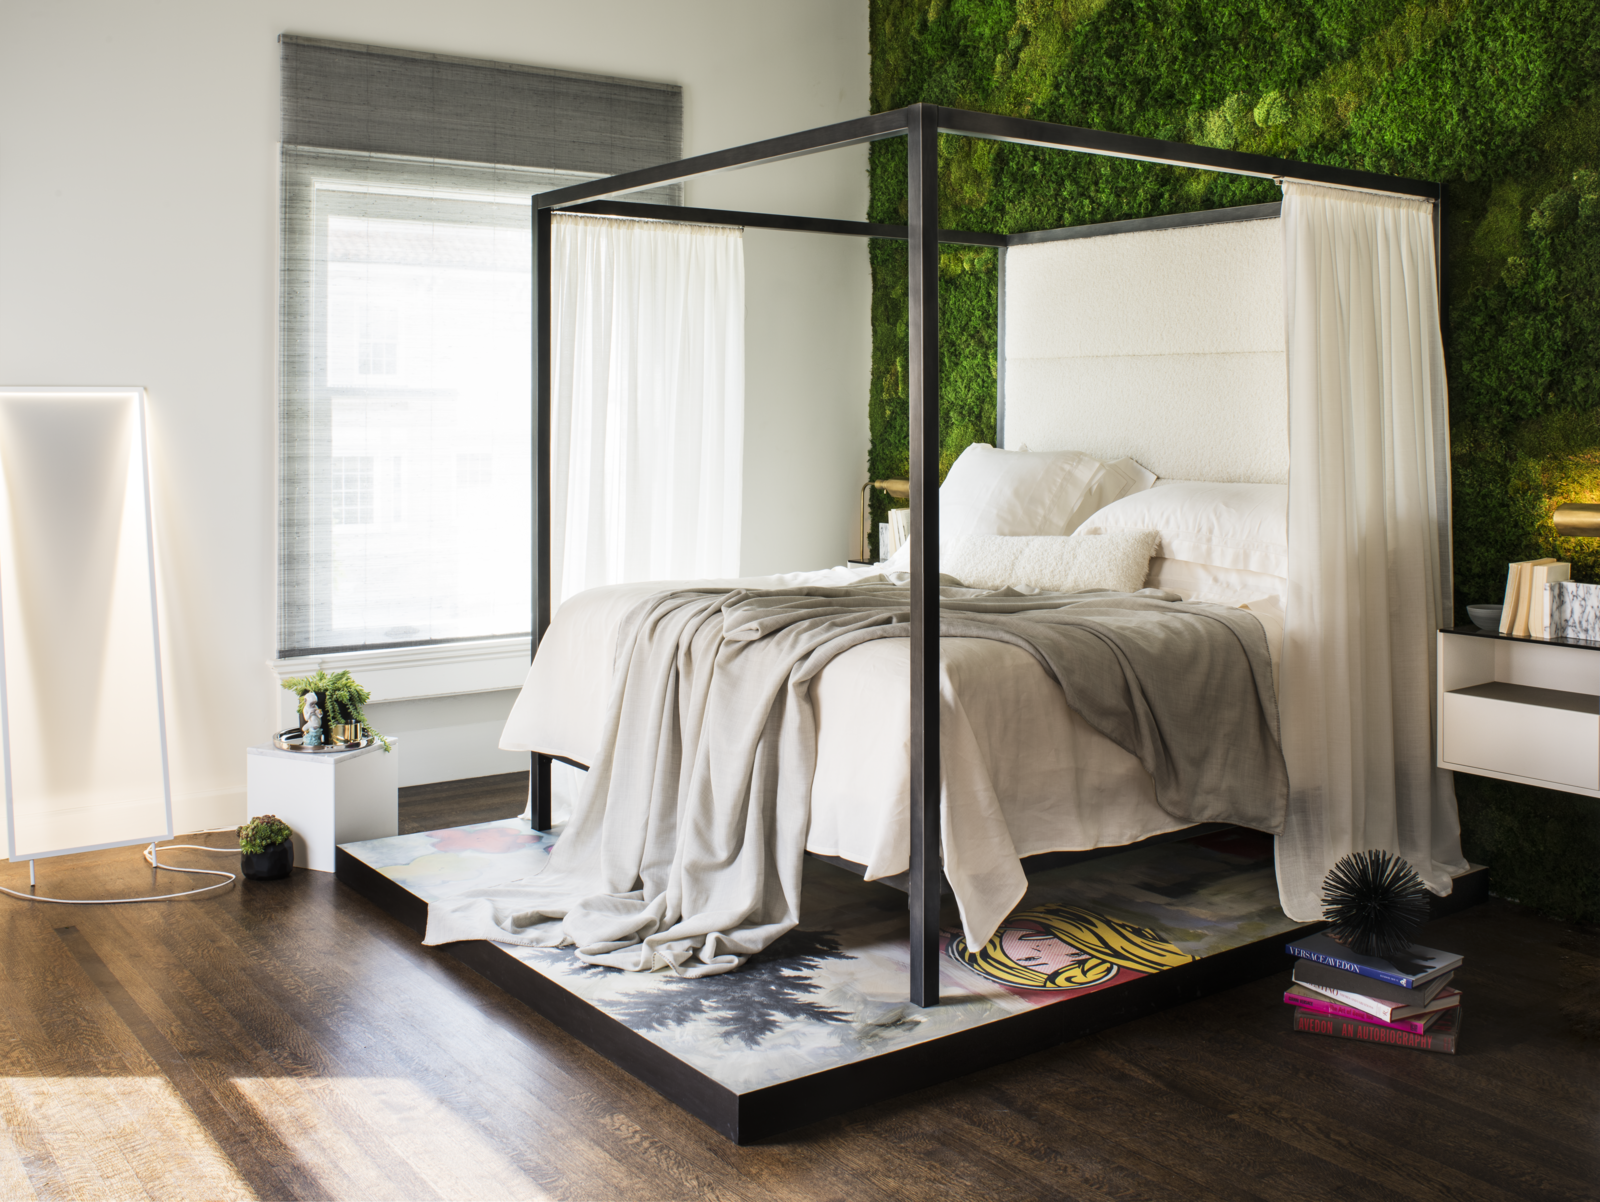 Referencing the progress of modern fashion, art, and culture, Jaimie Belew's bedroom suite marries softer elements, like the preserved living wall and textiles, with graphic accents for a  Photo 12 of 17 in Peek Inside the 2017 San Francisco Decorator Showcase